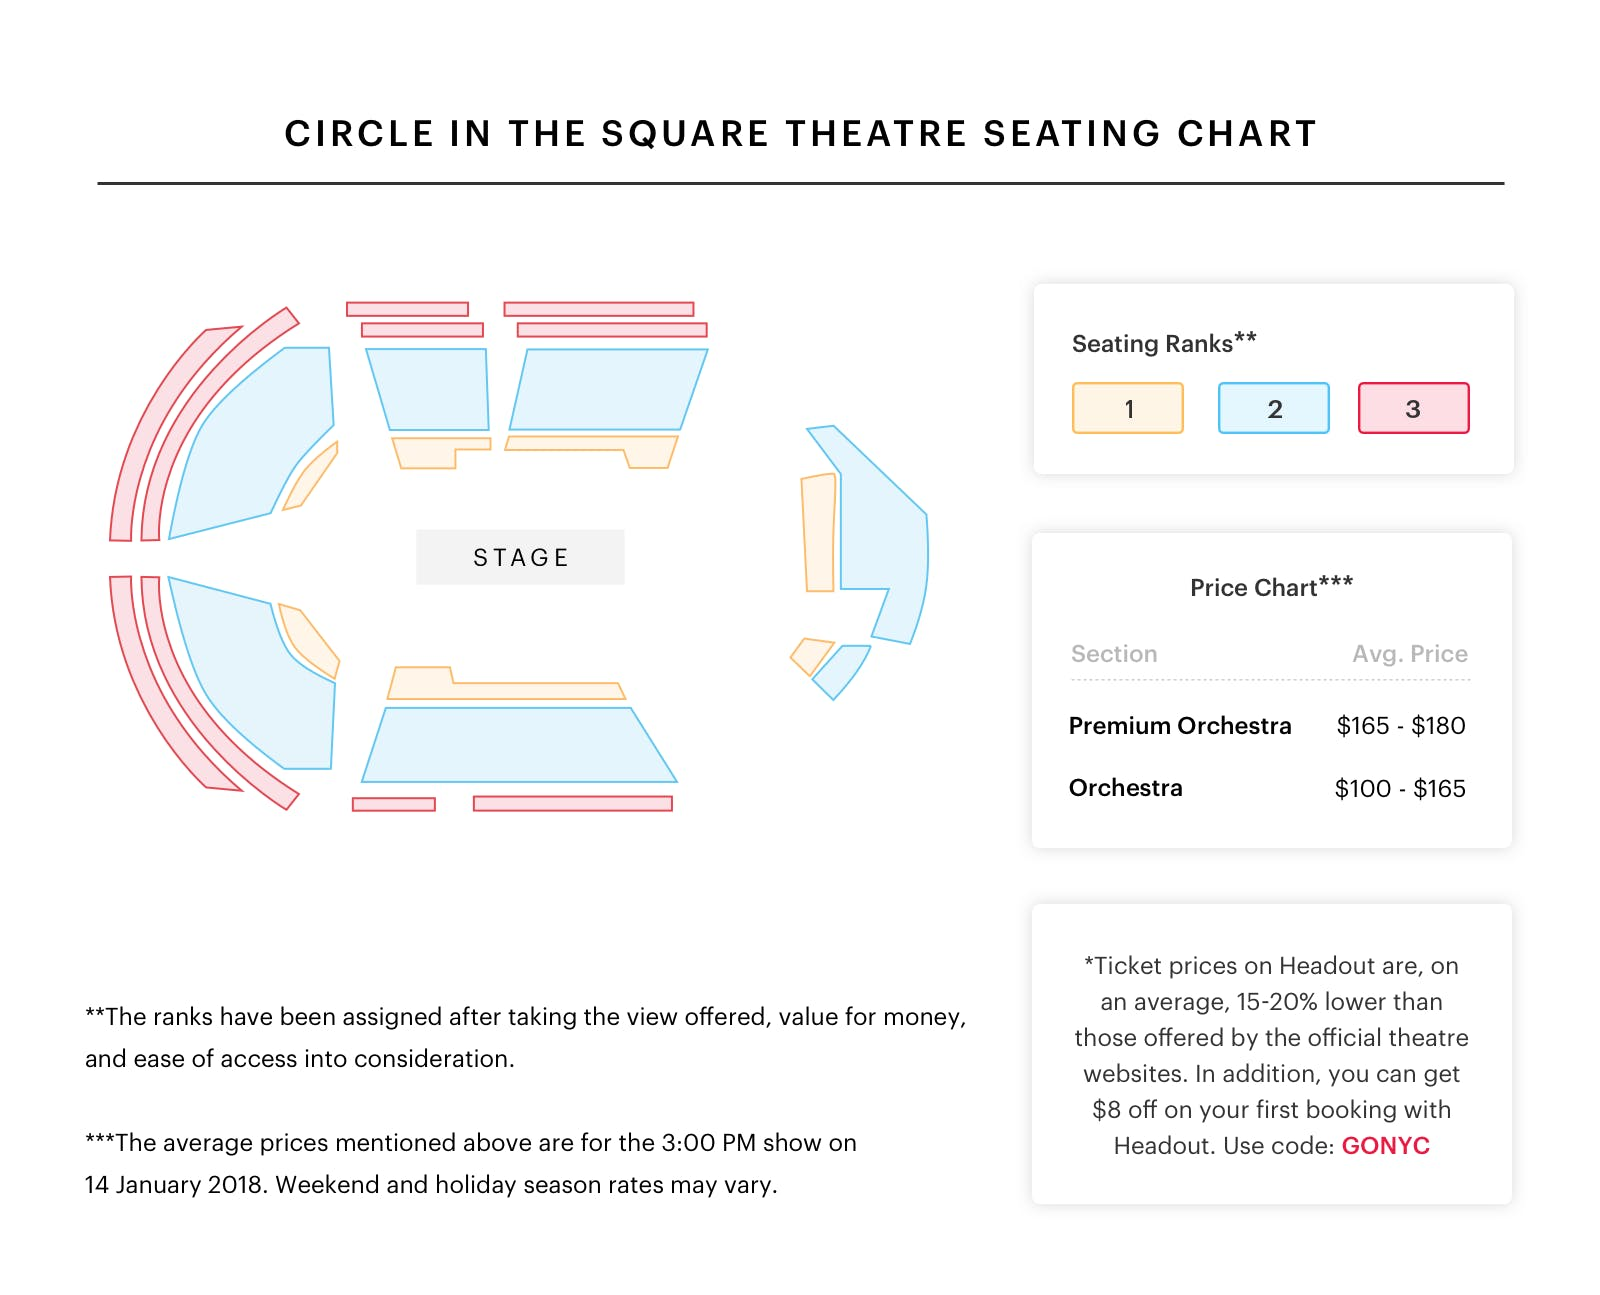 Circle-in-the-Square-Theatre-Seating-Chart